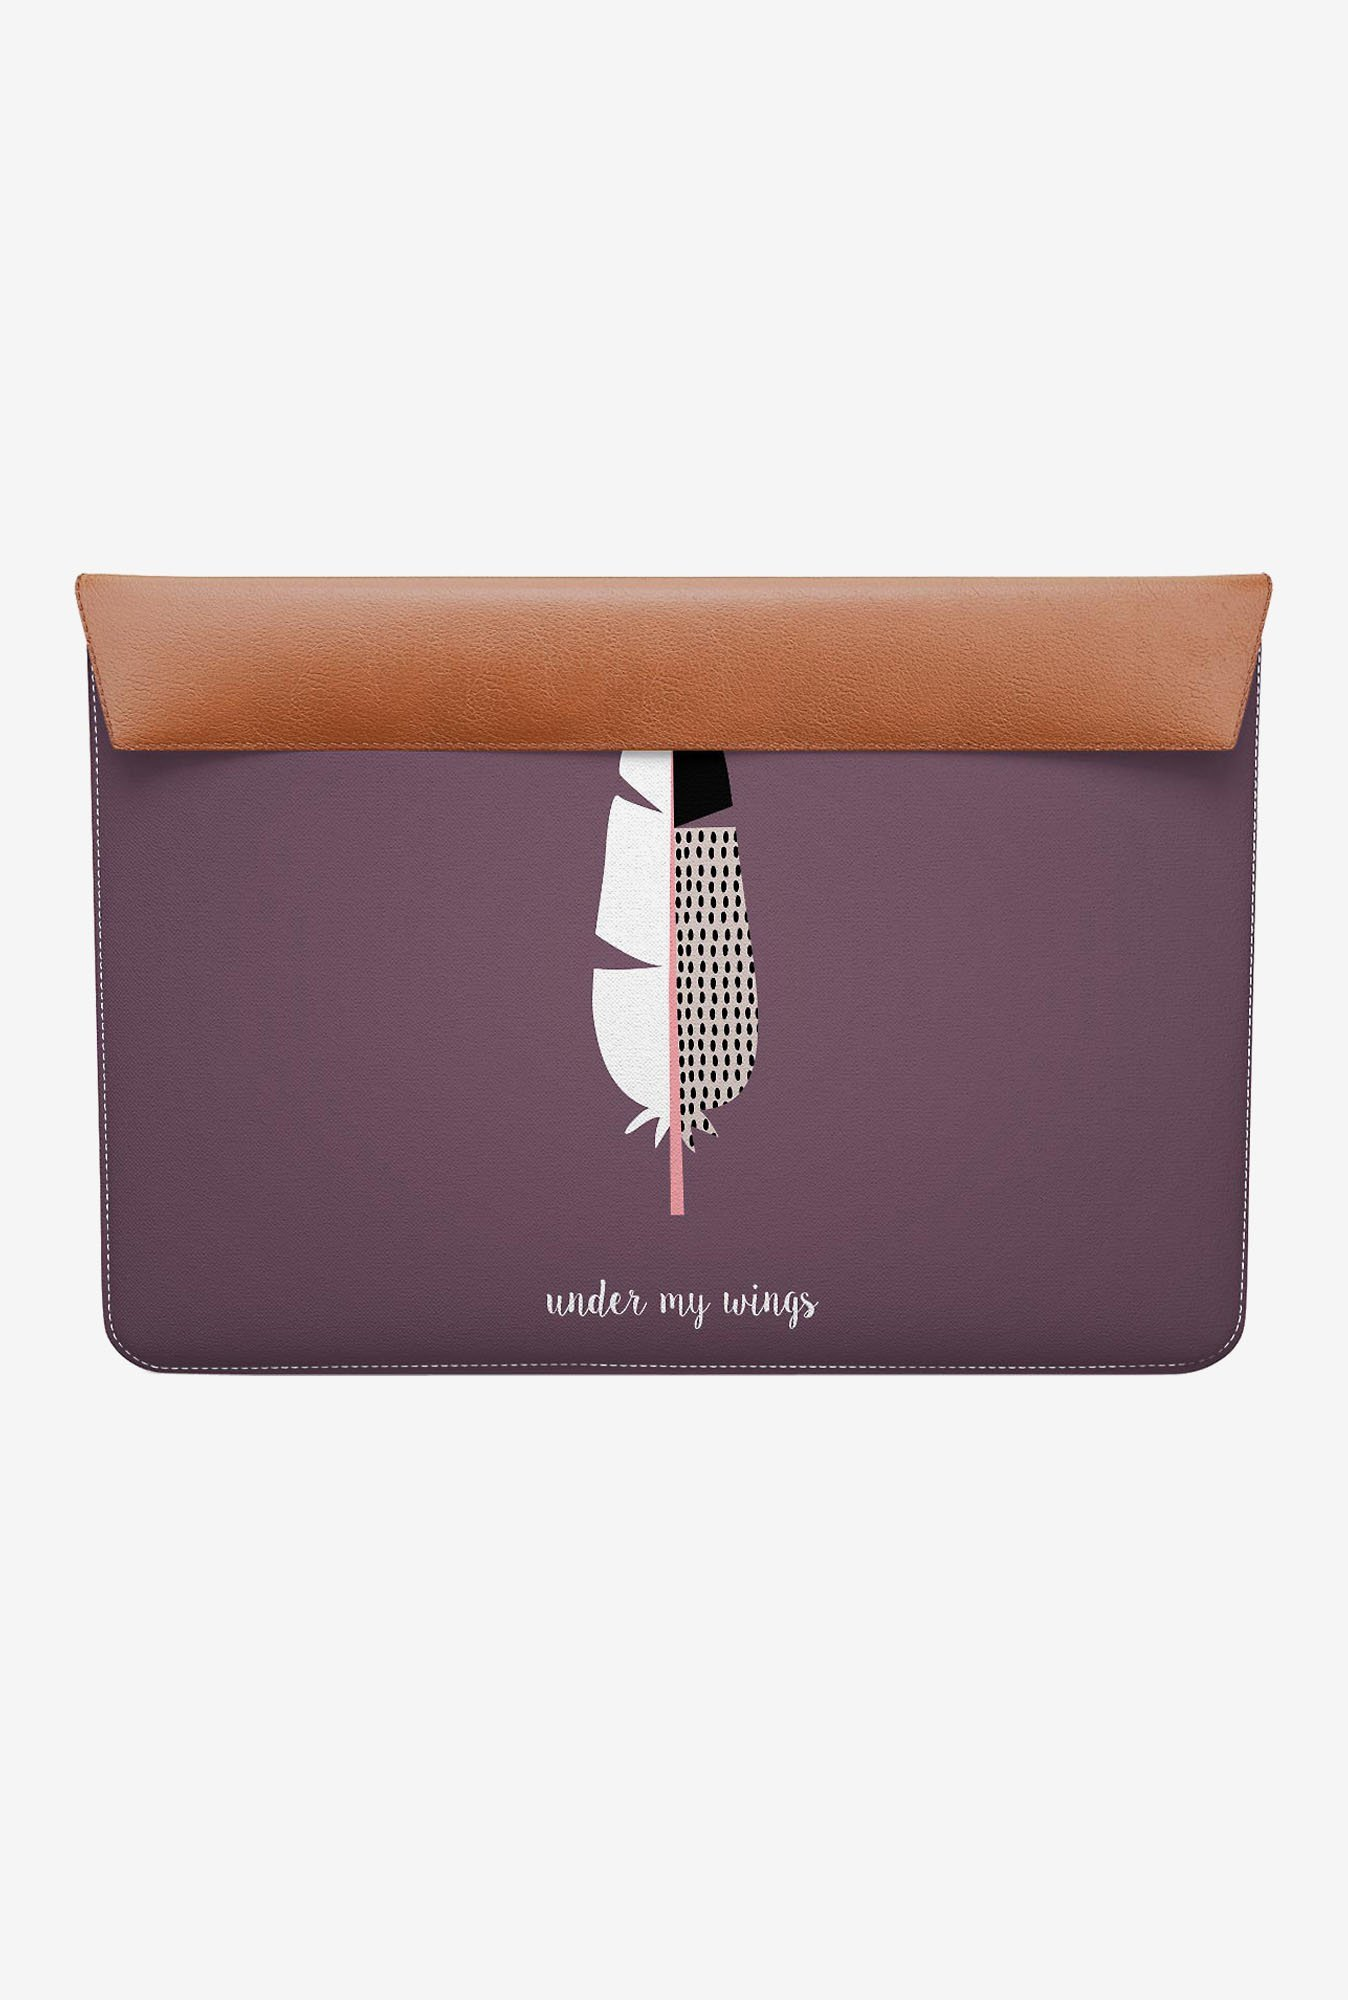 DailyObjects Under My Wings MacBook Air 13 Envelope Sleeve